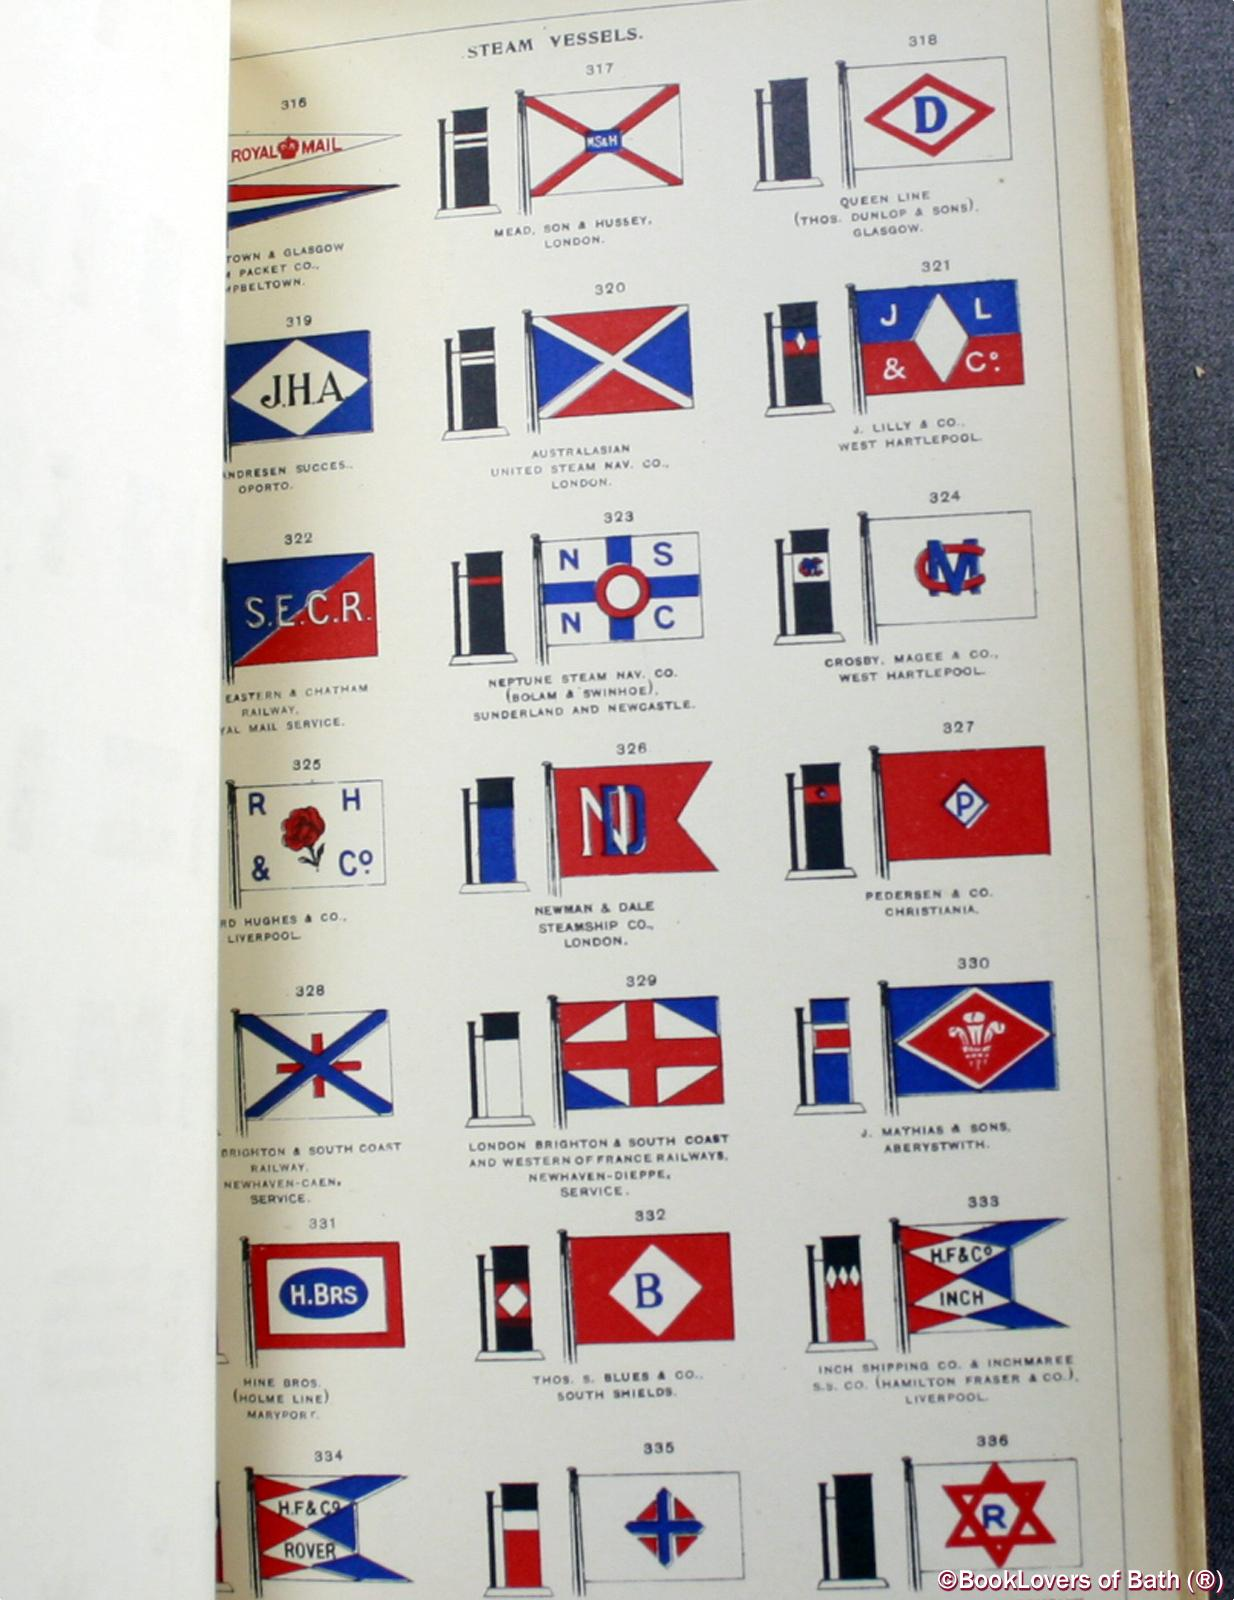 Lloyd's Book of House Flags & Funnels of the Principal Steamship Lines of the World, and the House Flags of Various Lines of Sailing Vessels - Anon.